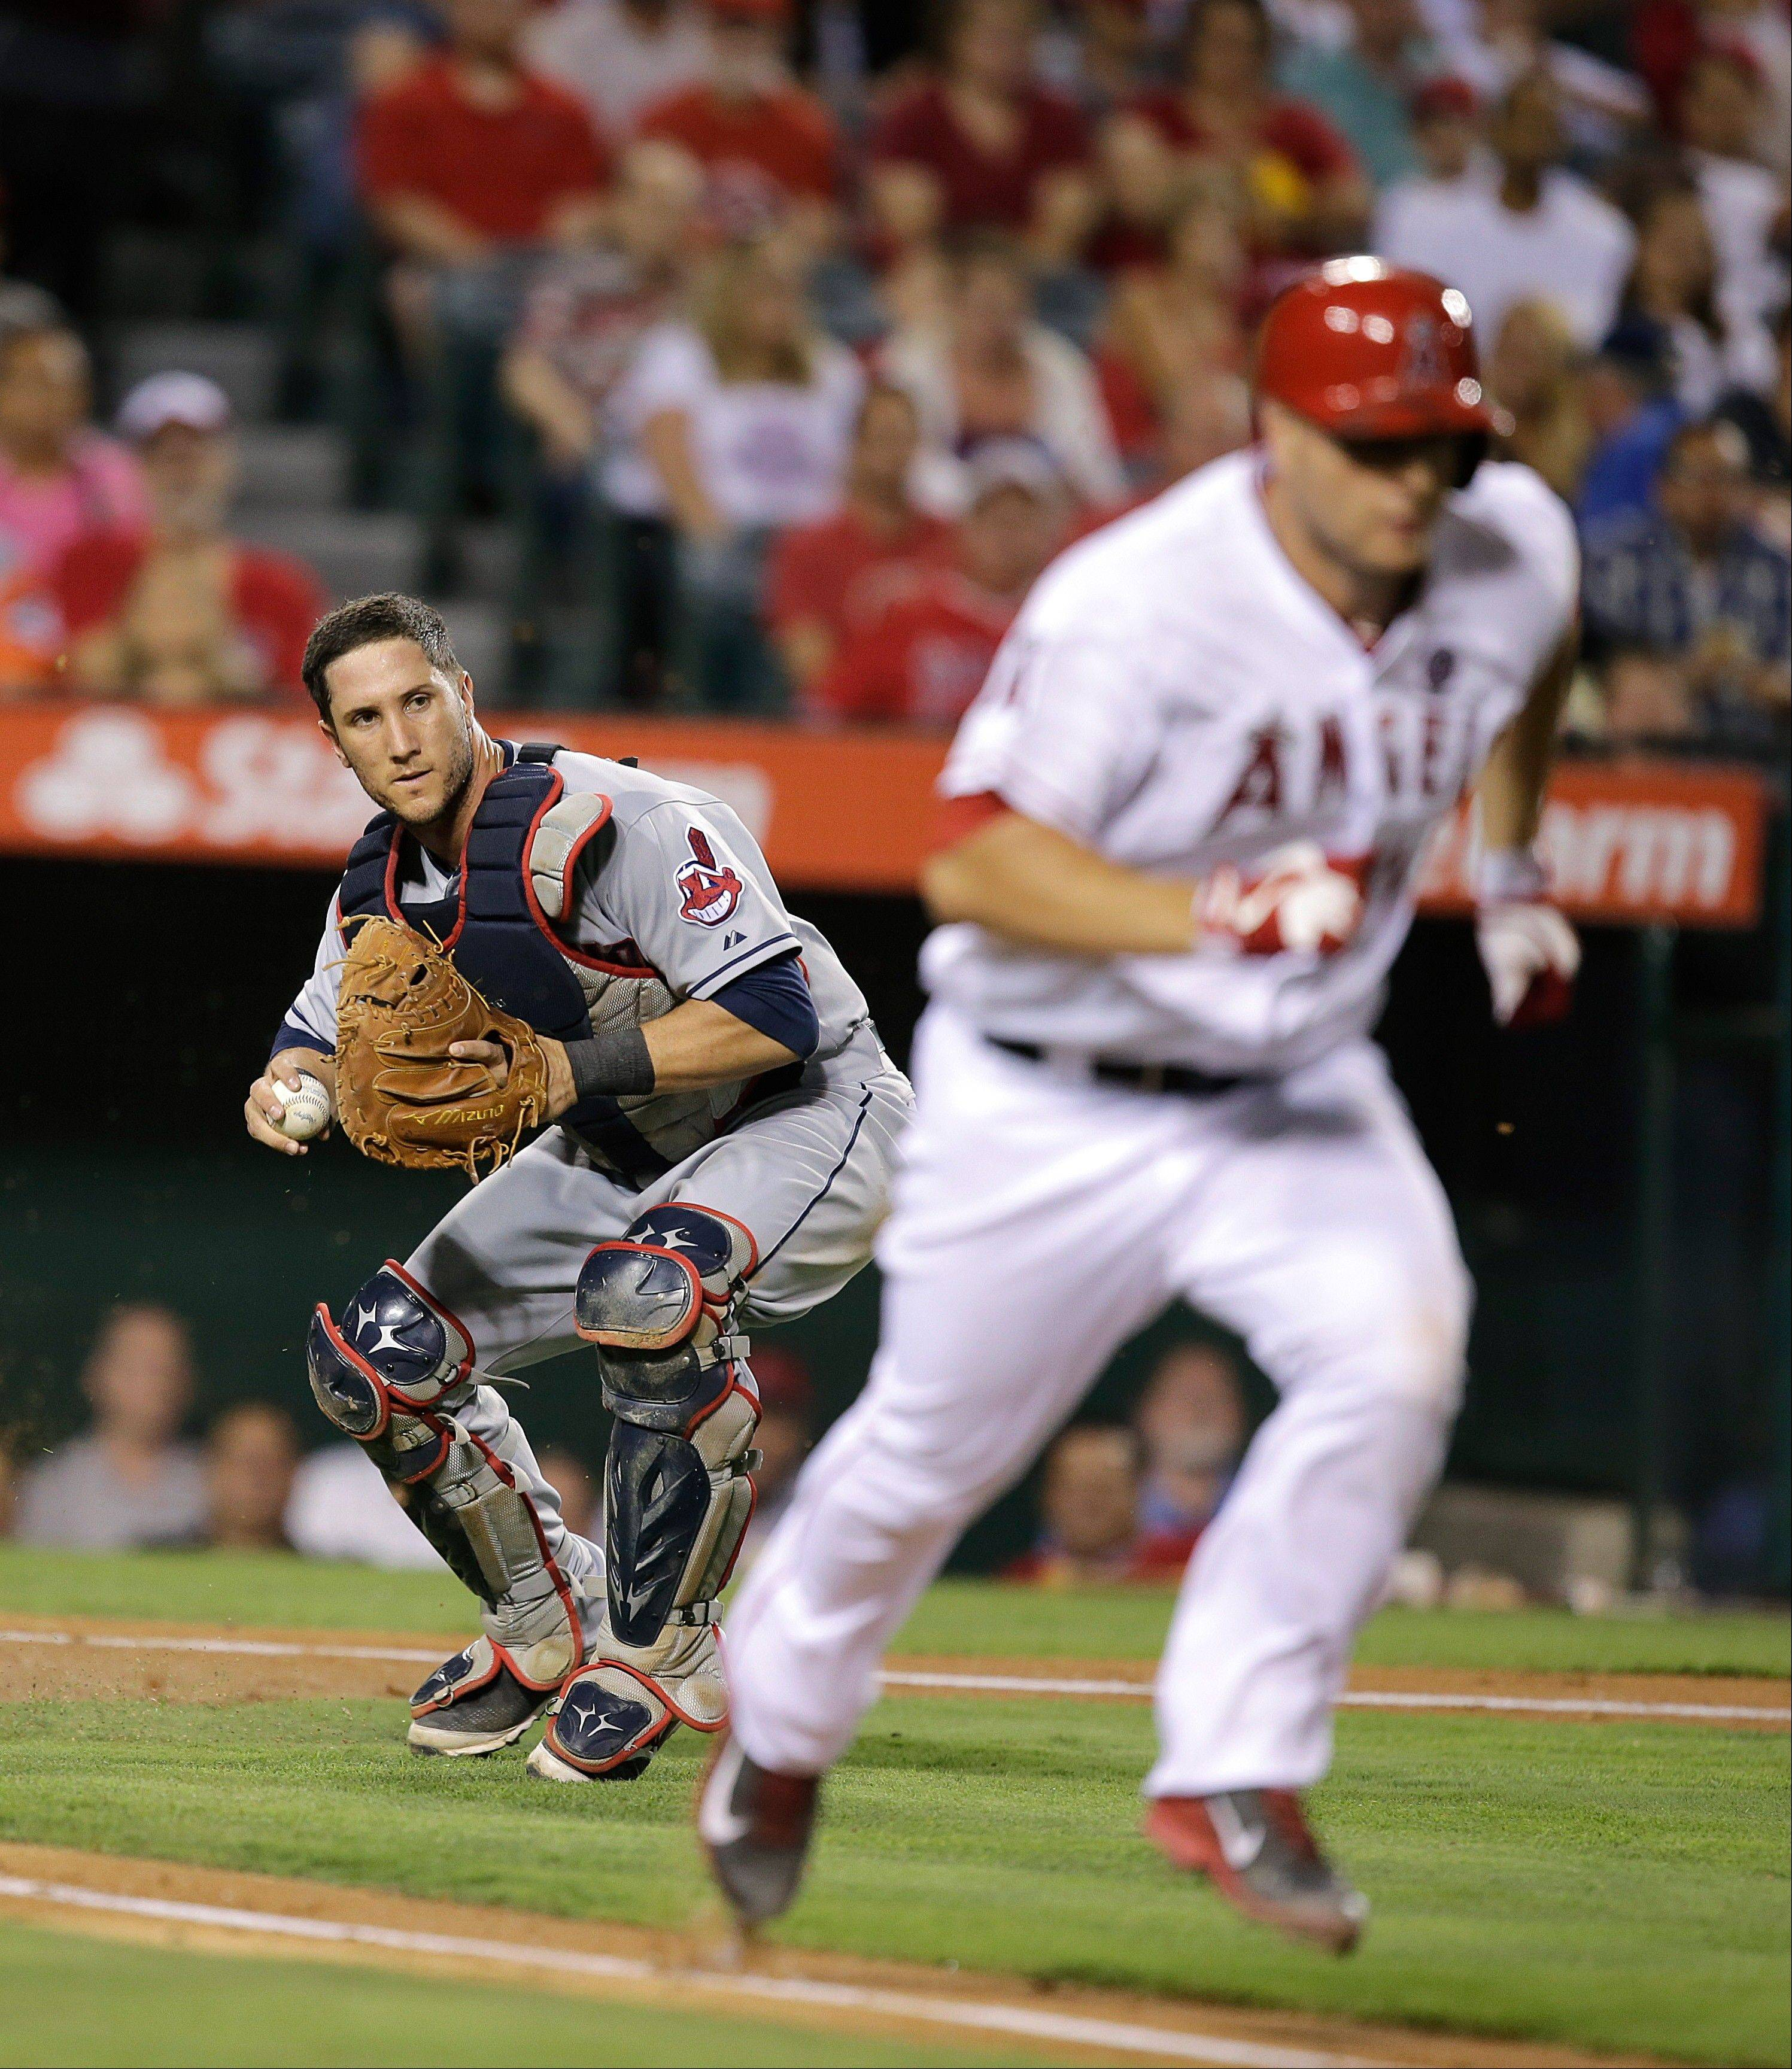 Cleveland Indians catcher Yan Gomes, left, looks to throw the ball to first base to force out Los Angeles Angels' Chris Iannetta during the fourth inning of a baseball game on Tuesday, Aug. 20, 2013, in Anaheim, Calif. (AP Photo/Jae C. Hong)